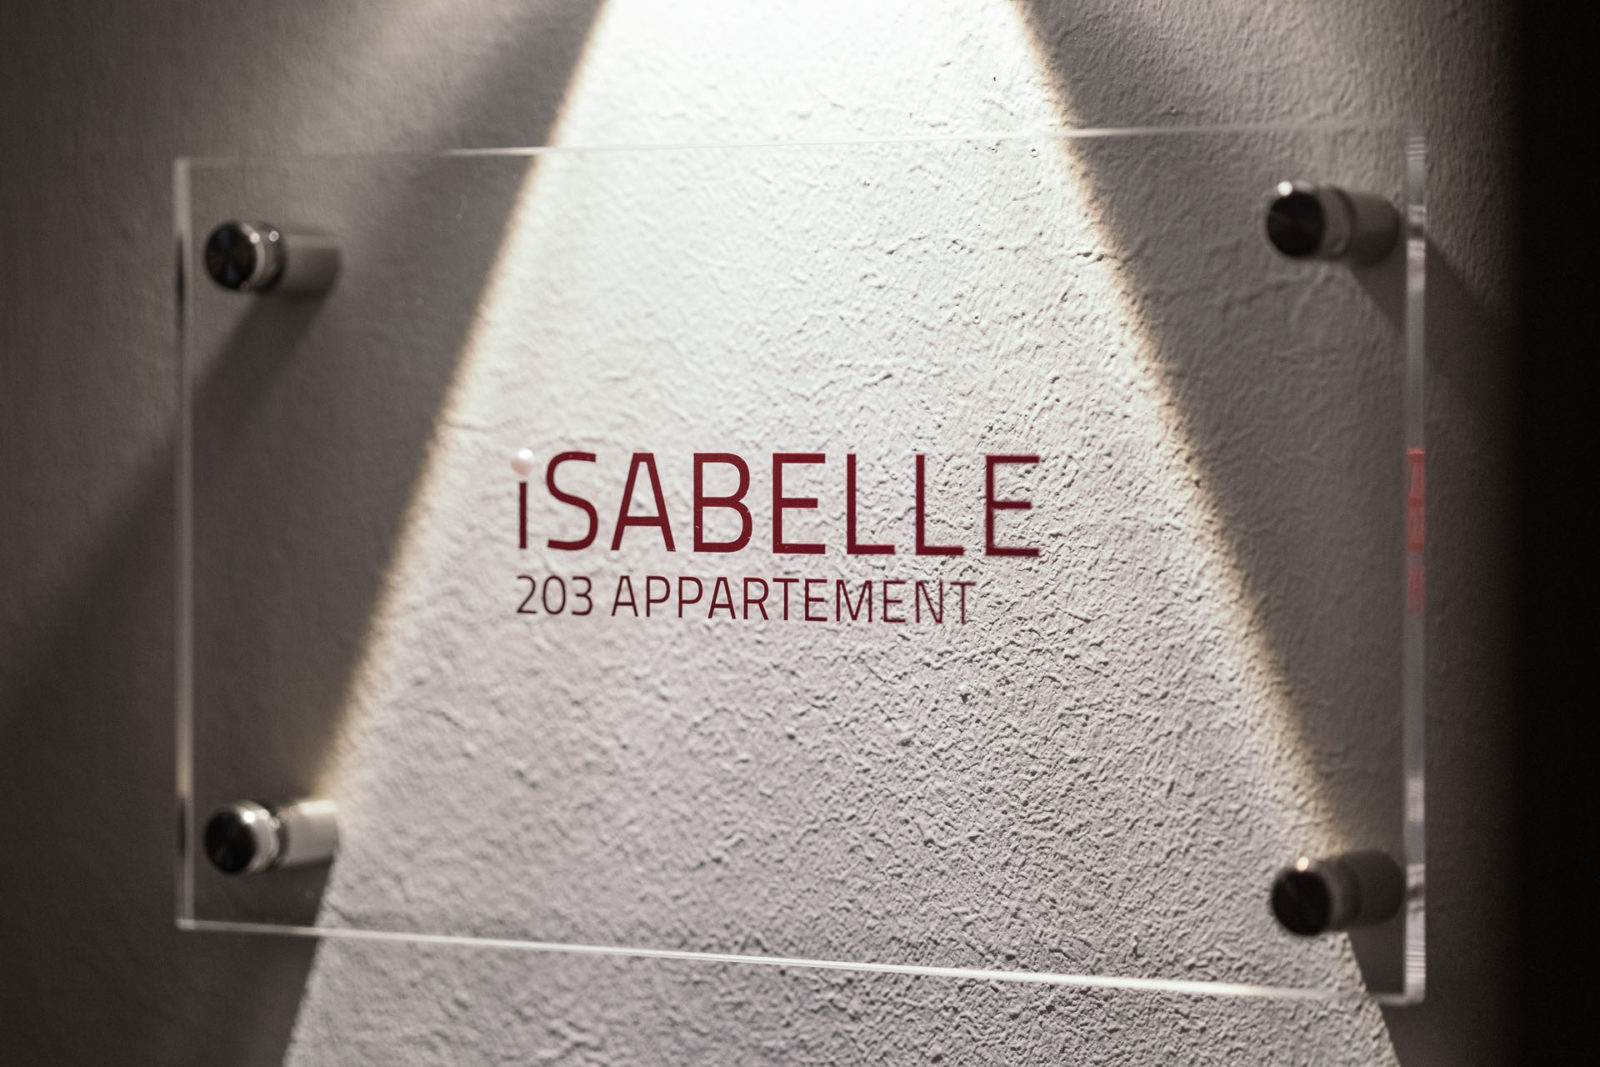 Isabelle Appartement